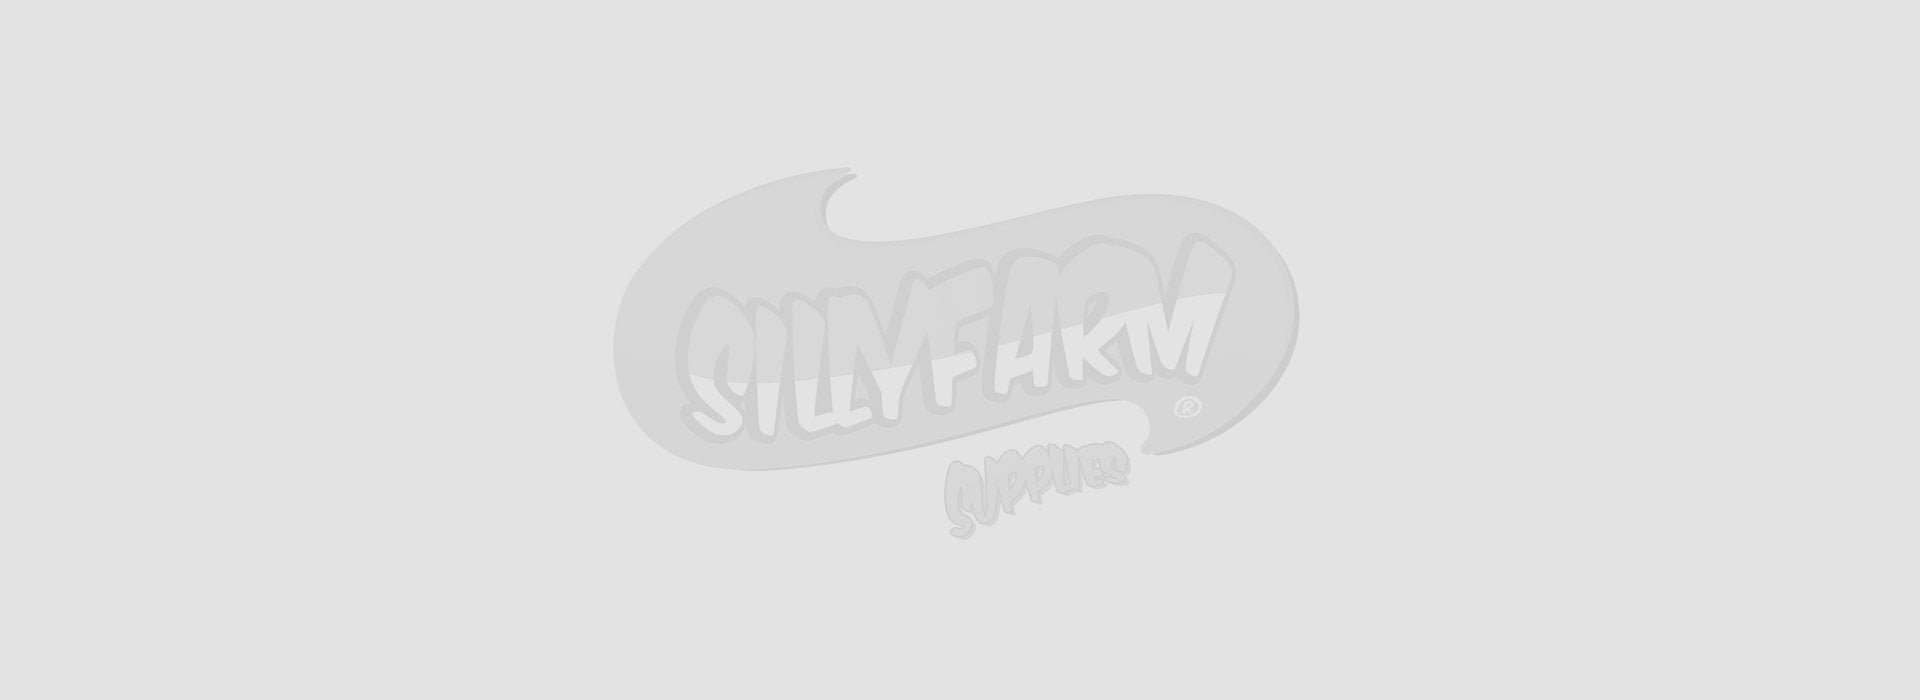 DISCOUNT_HIDDEN_PRODUCT | Silly Farm Supplies